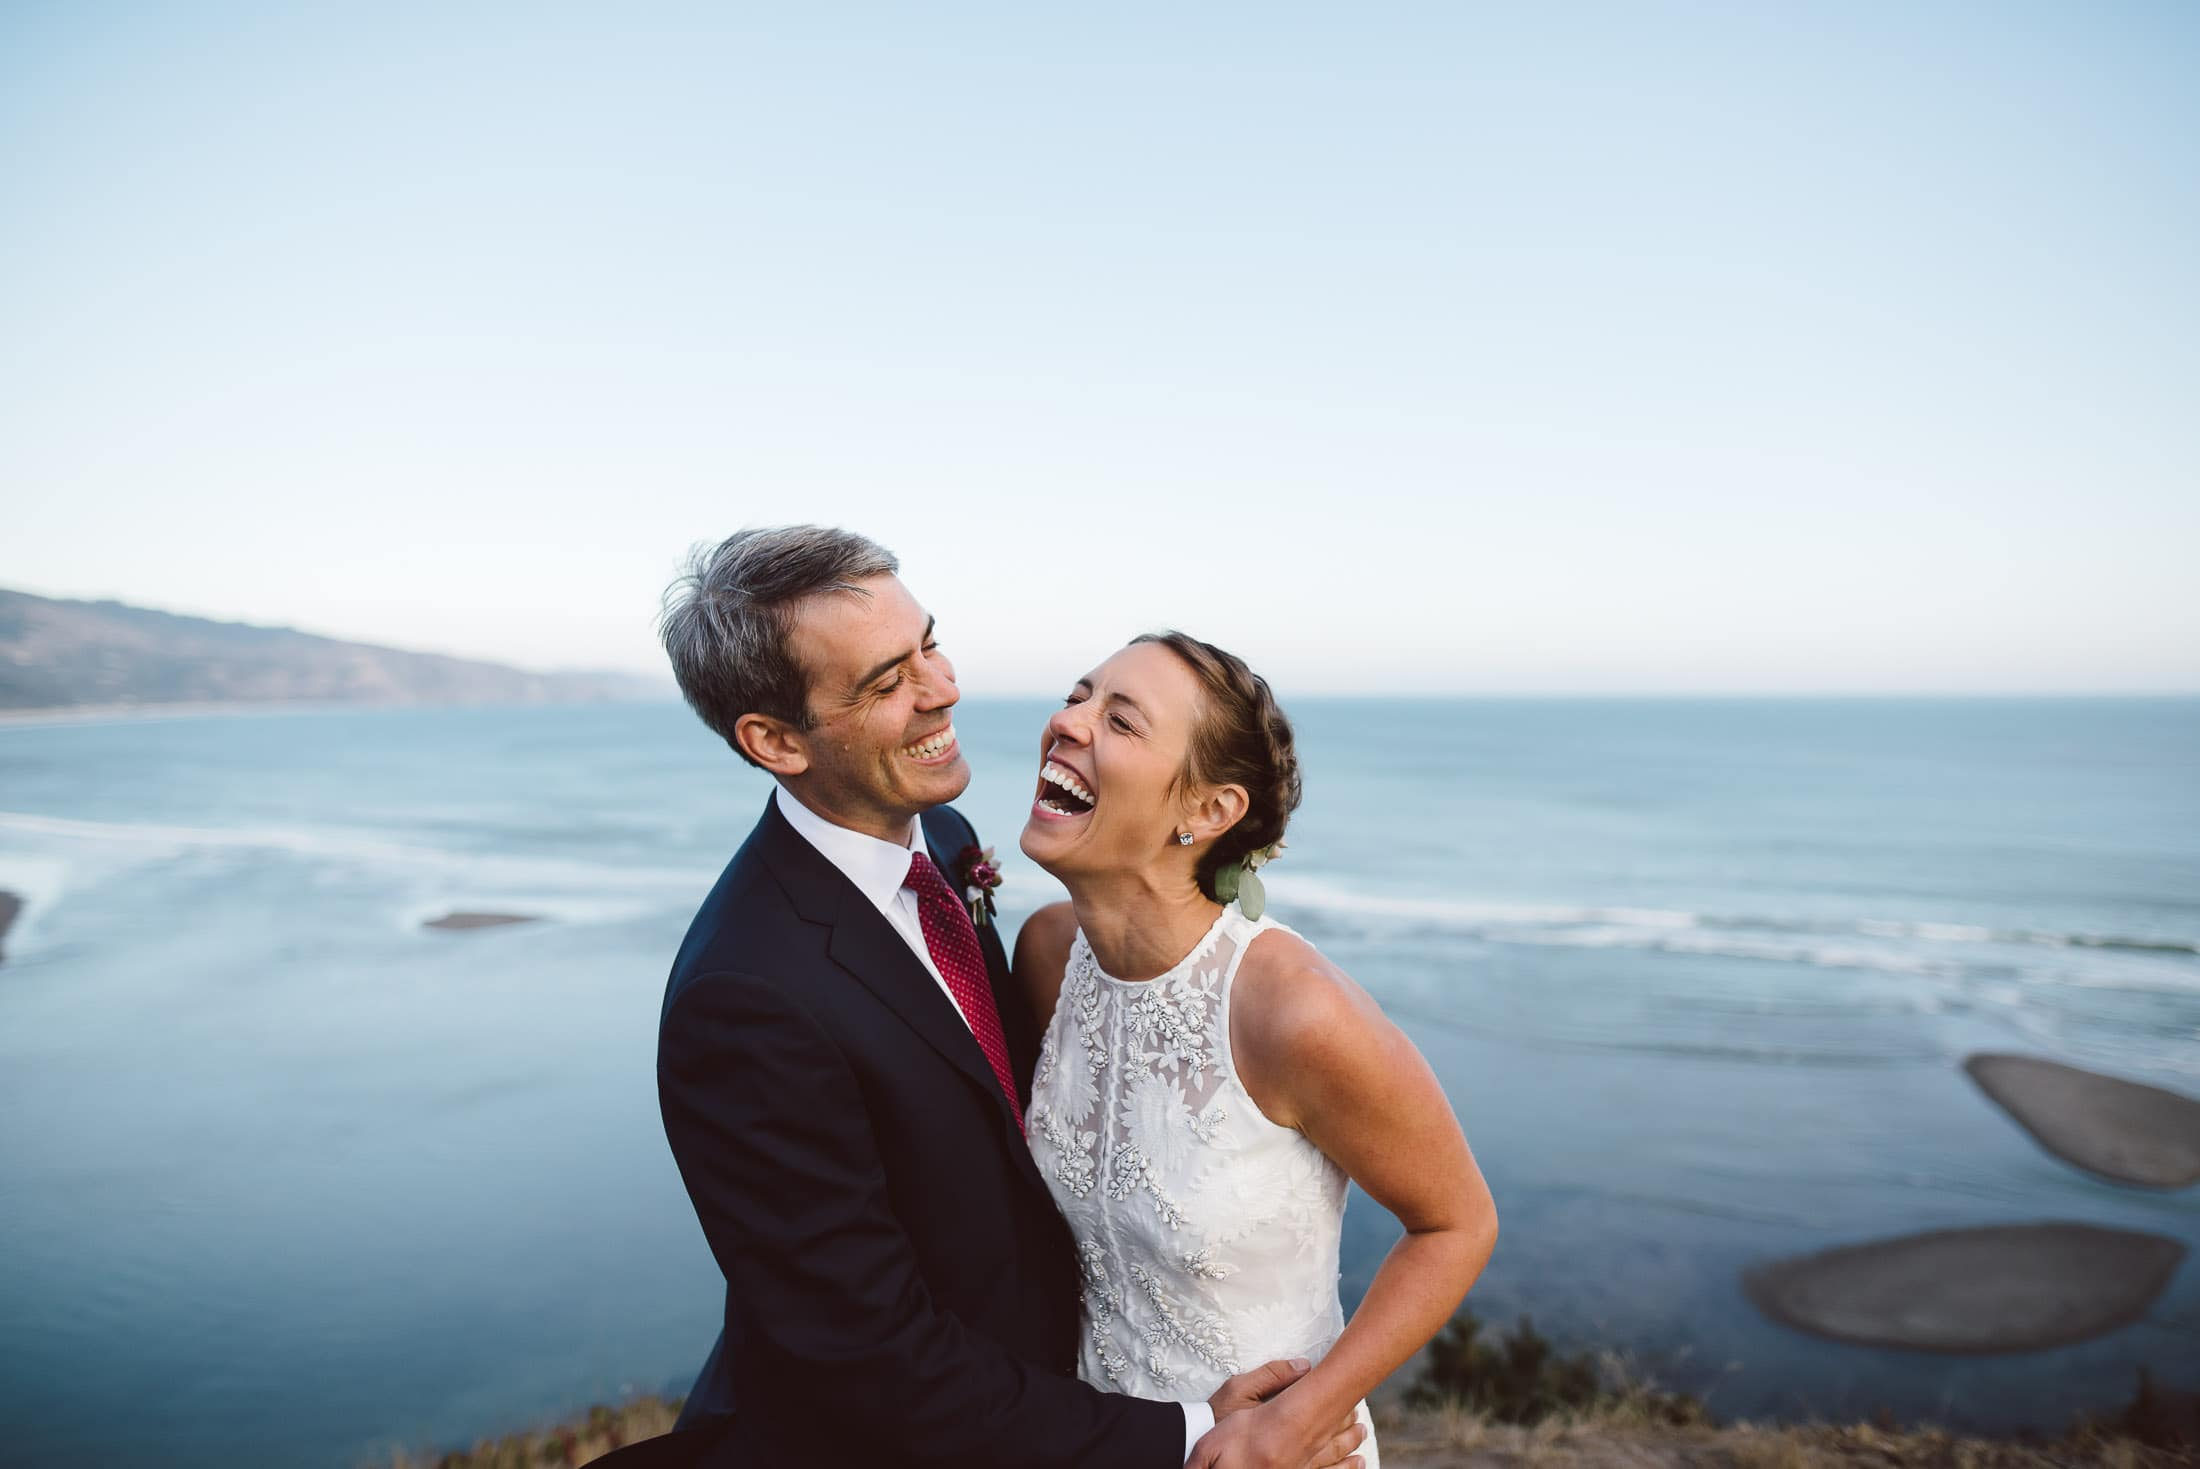 Bolinas wedding portrait overlooking the ocean